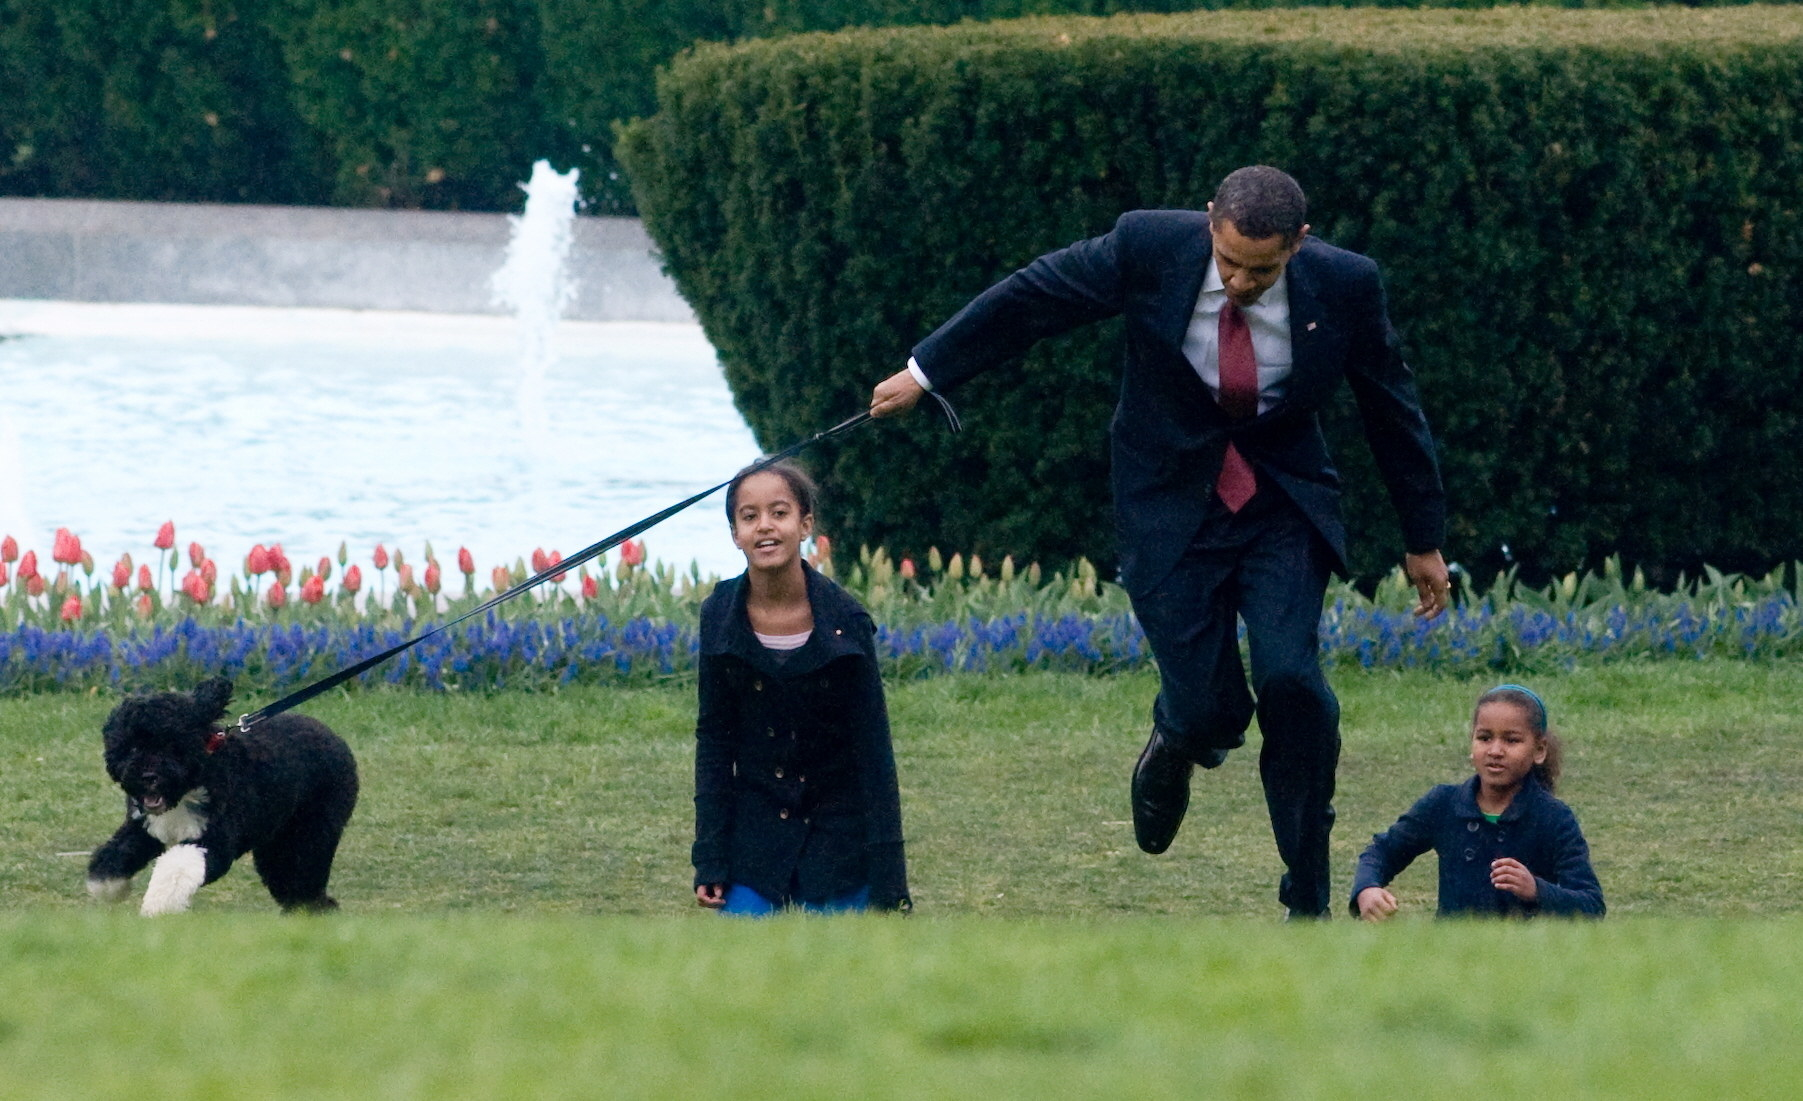 Bo pulling on his leash as President Obama tries to hold on